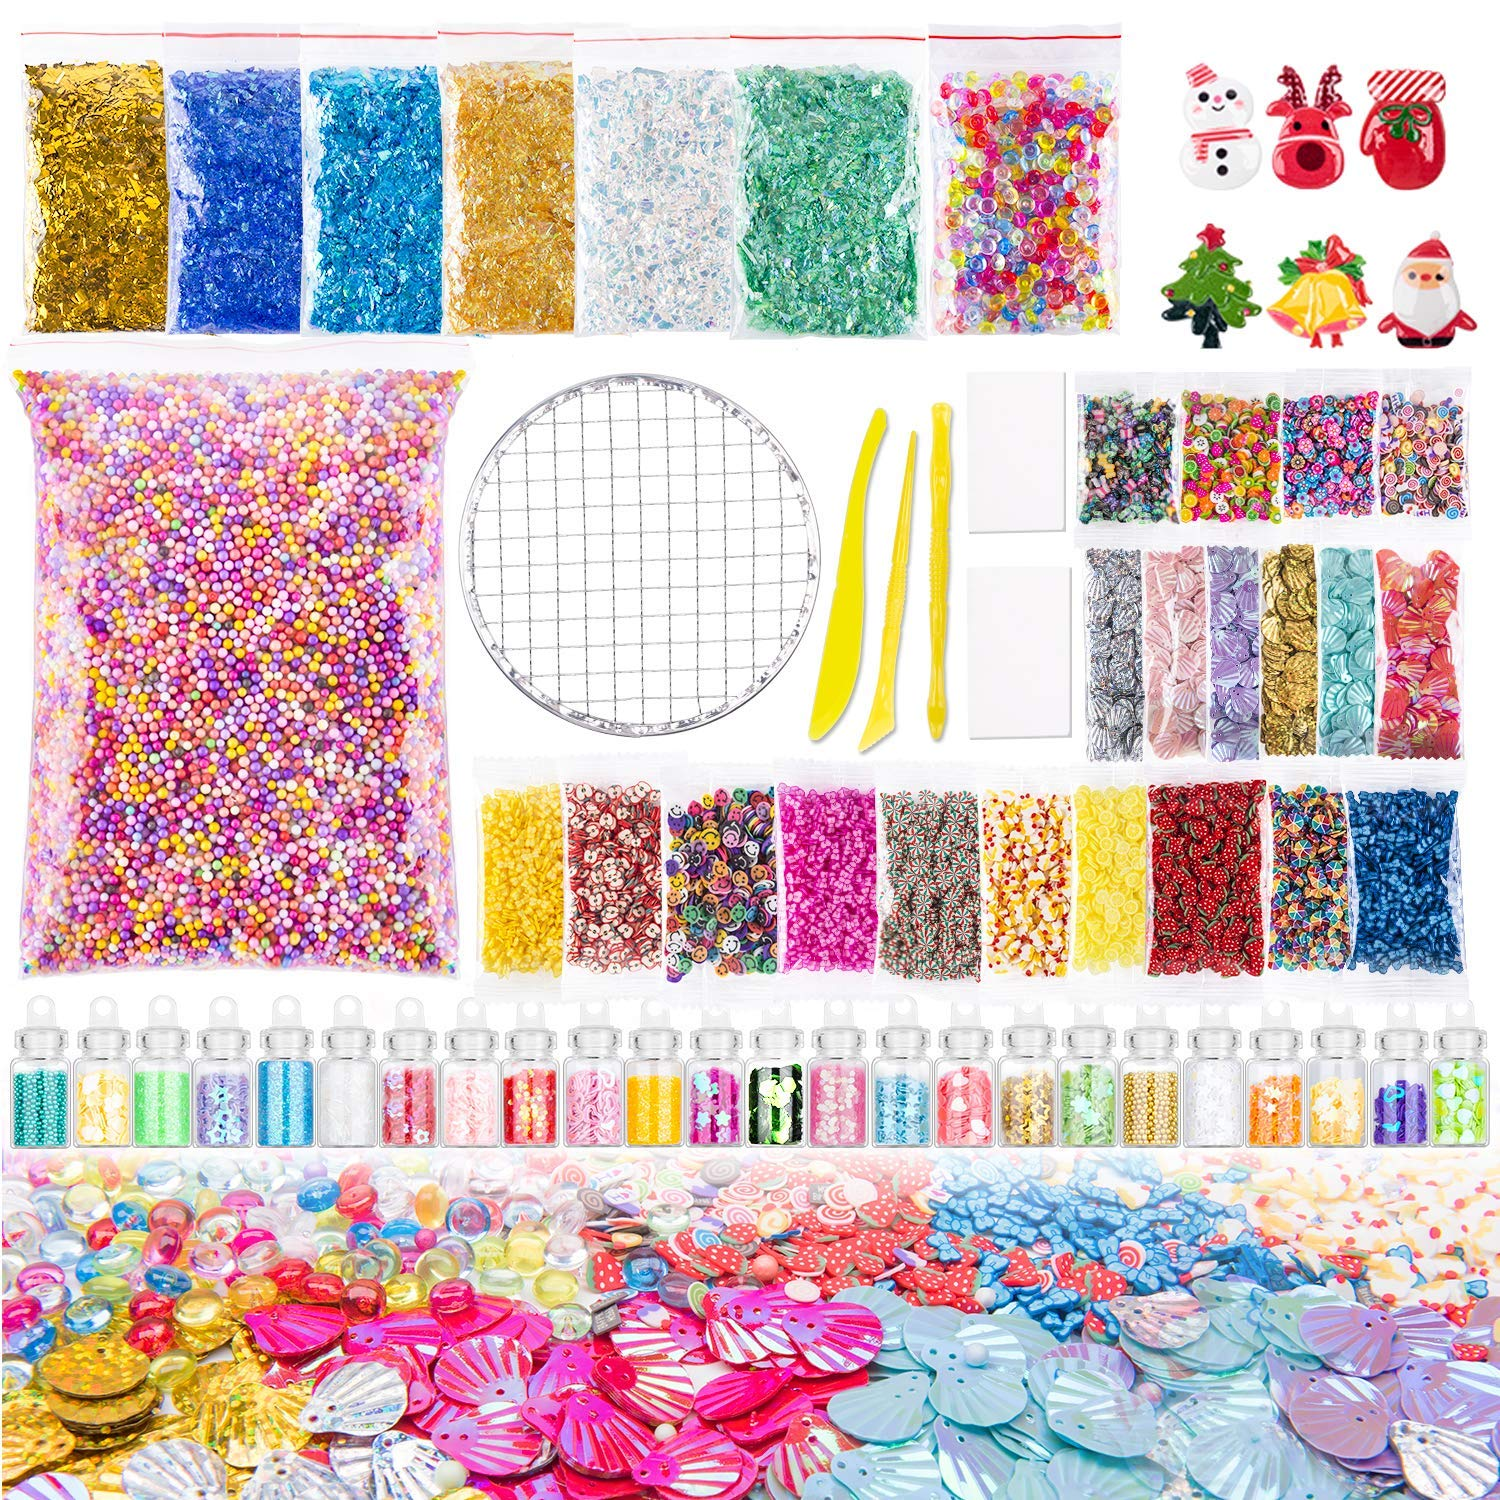 FUTOHON Slime Supplies Kit,57 Pack Slime Beads Charms Include Foam Beads,Fishbowl Beads,Glitter Jars,Cake Flower Fruit Slices,Shell,Sugar Paper,Christmas Ornaments,Slime Tools for DIY Slime Making